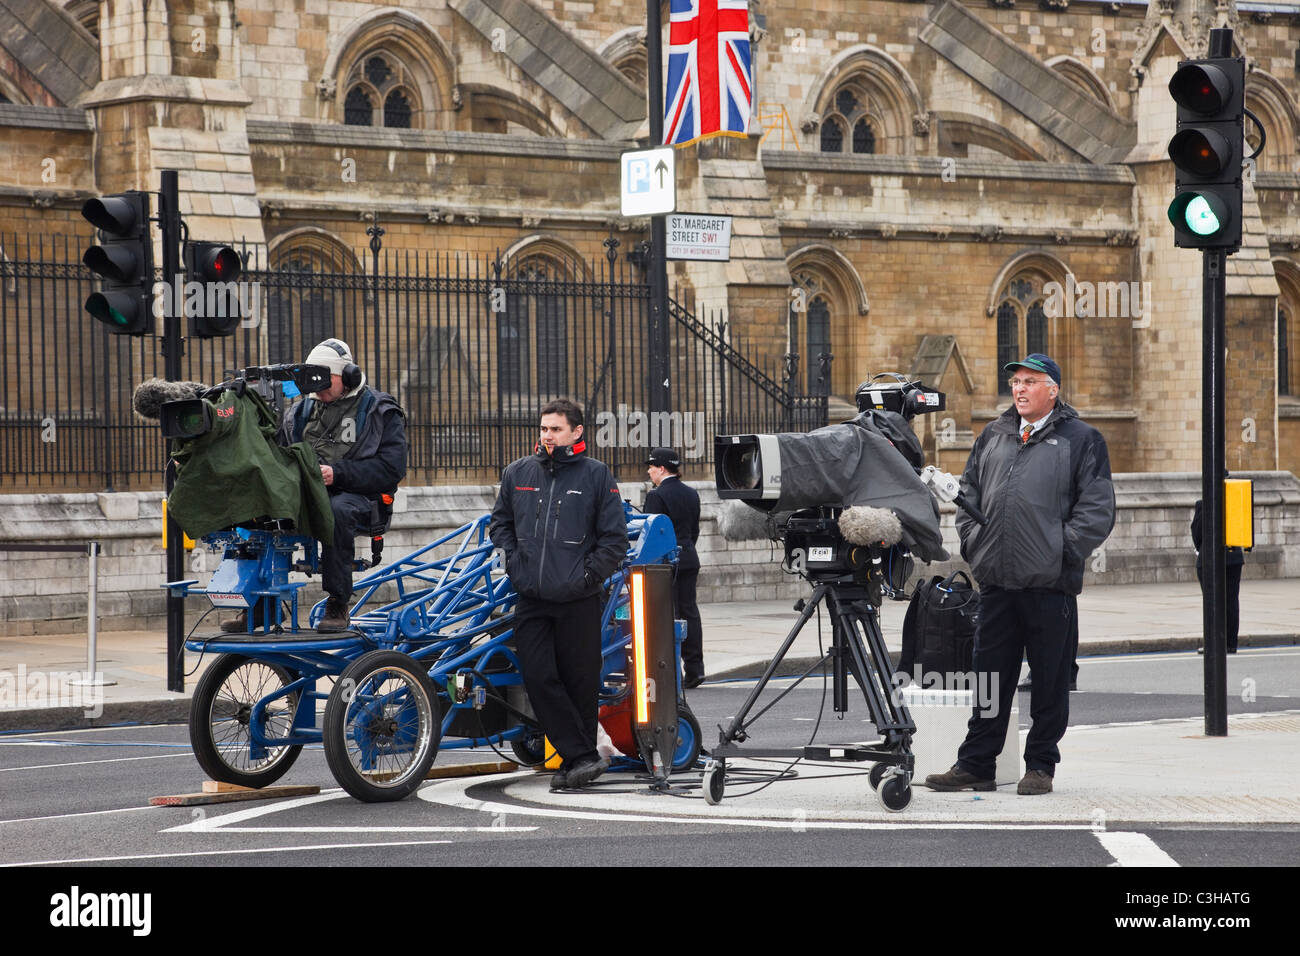 Parliament Square, City of Westminster, London, England, UK. TV film crew cameramen in street filming on Royal Wedding - Stock Image